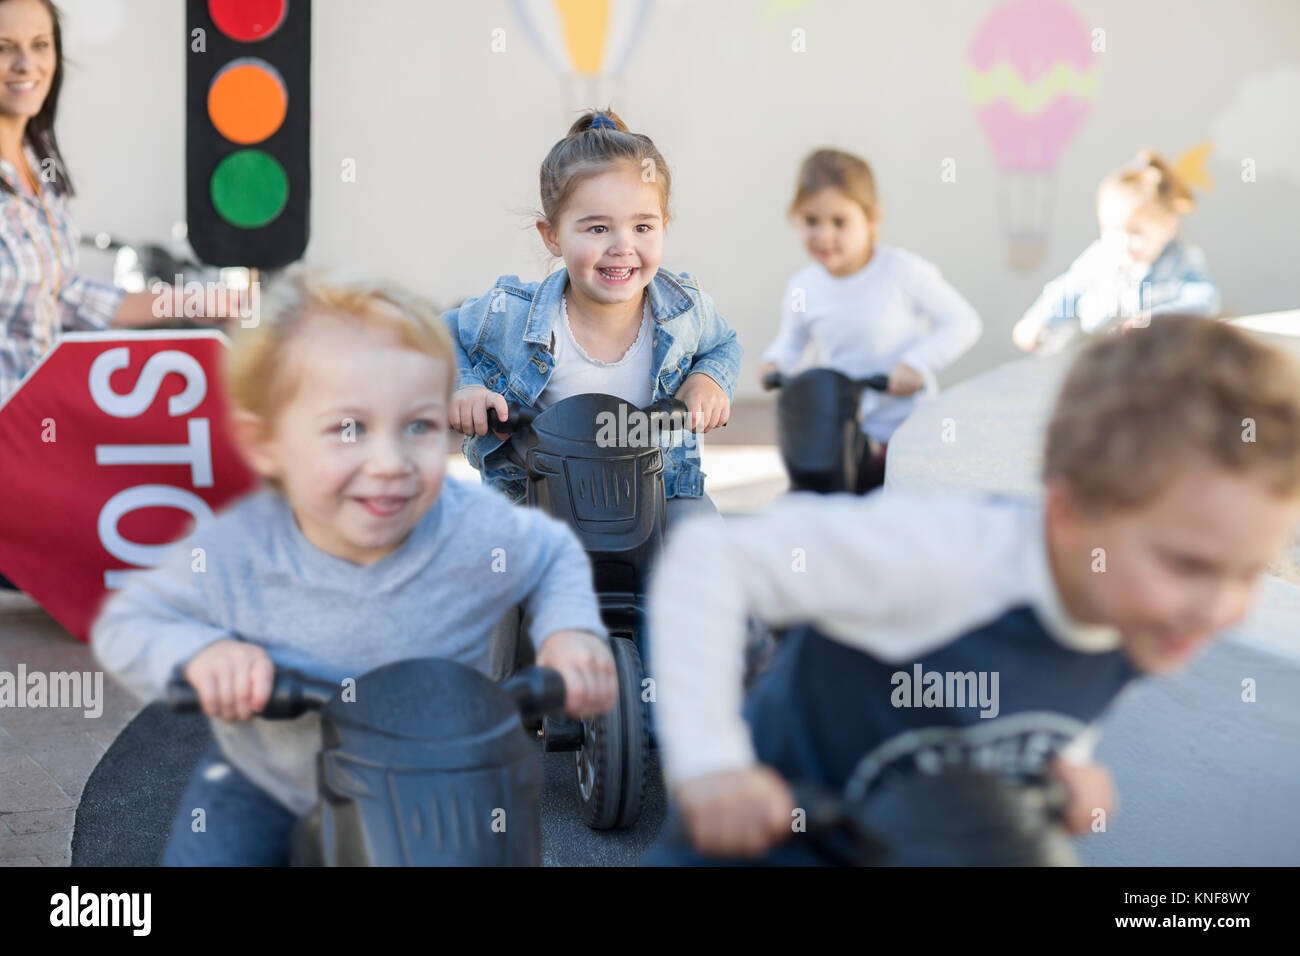 Boys and girls at preschool, racing push motorbikes in garden - Stock Image